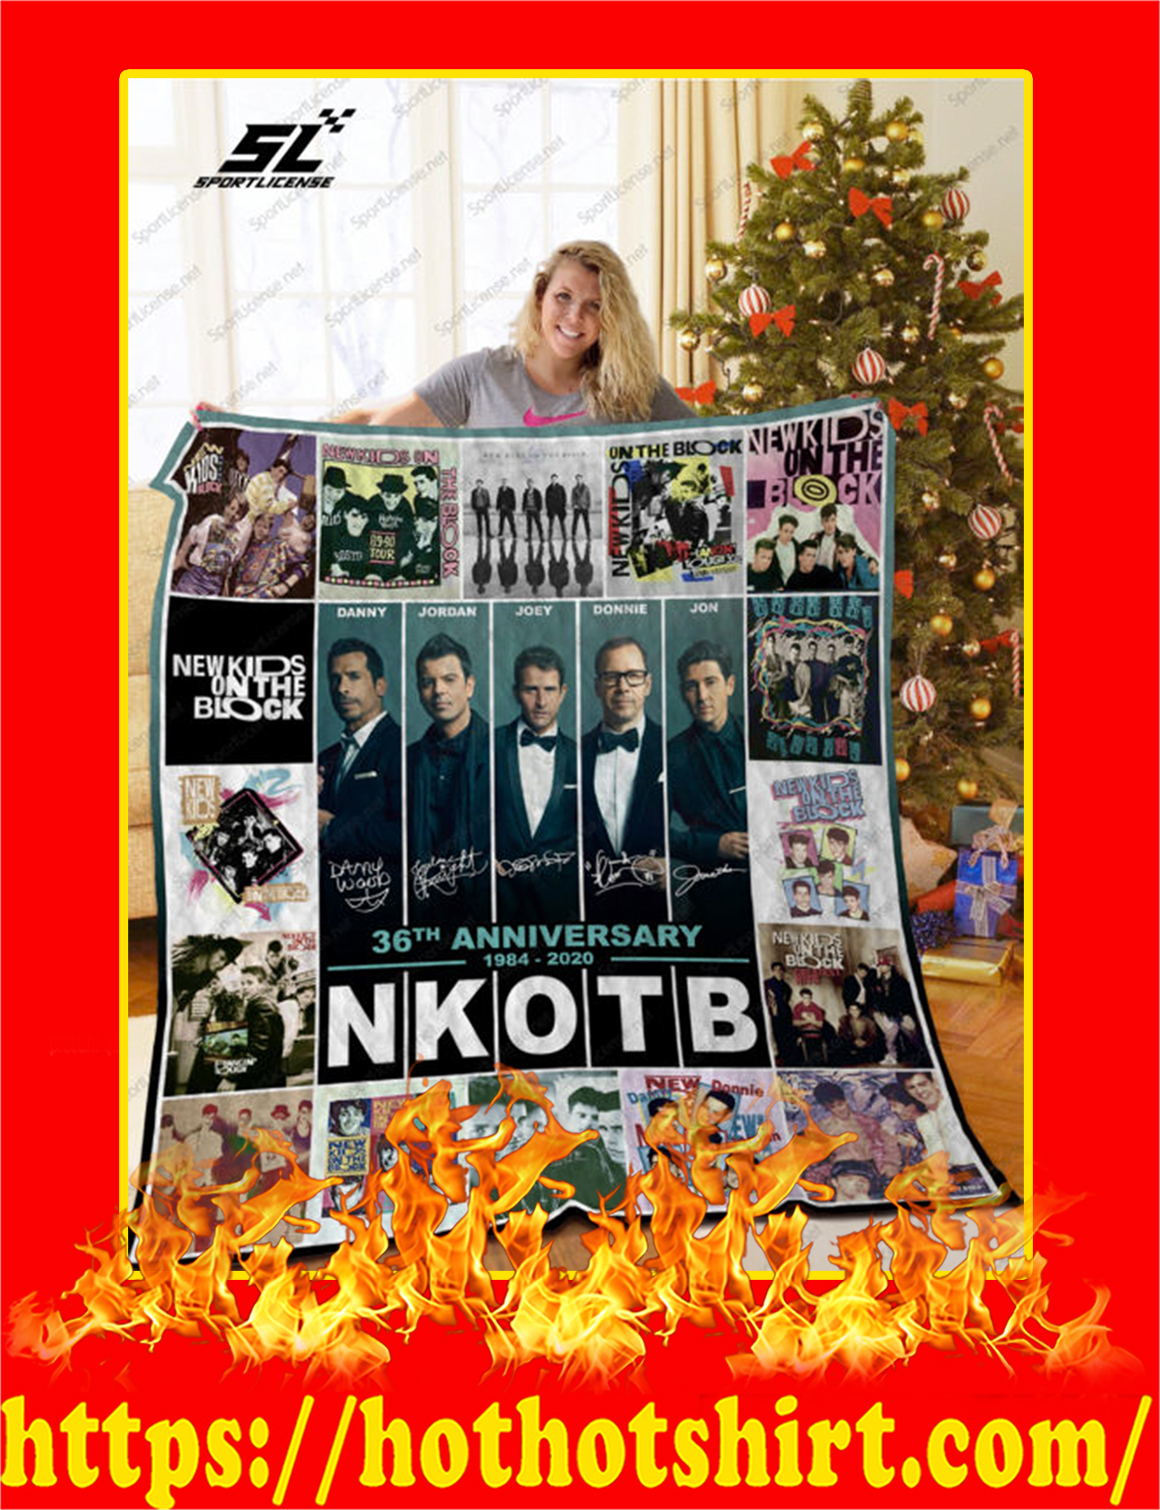 NKOTB 36th Anniversary 1984 2020 Quilt Blanket - king